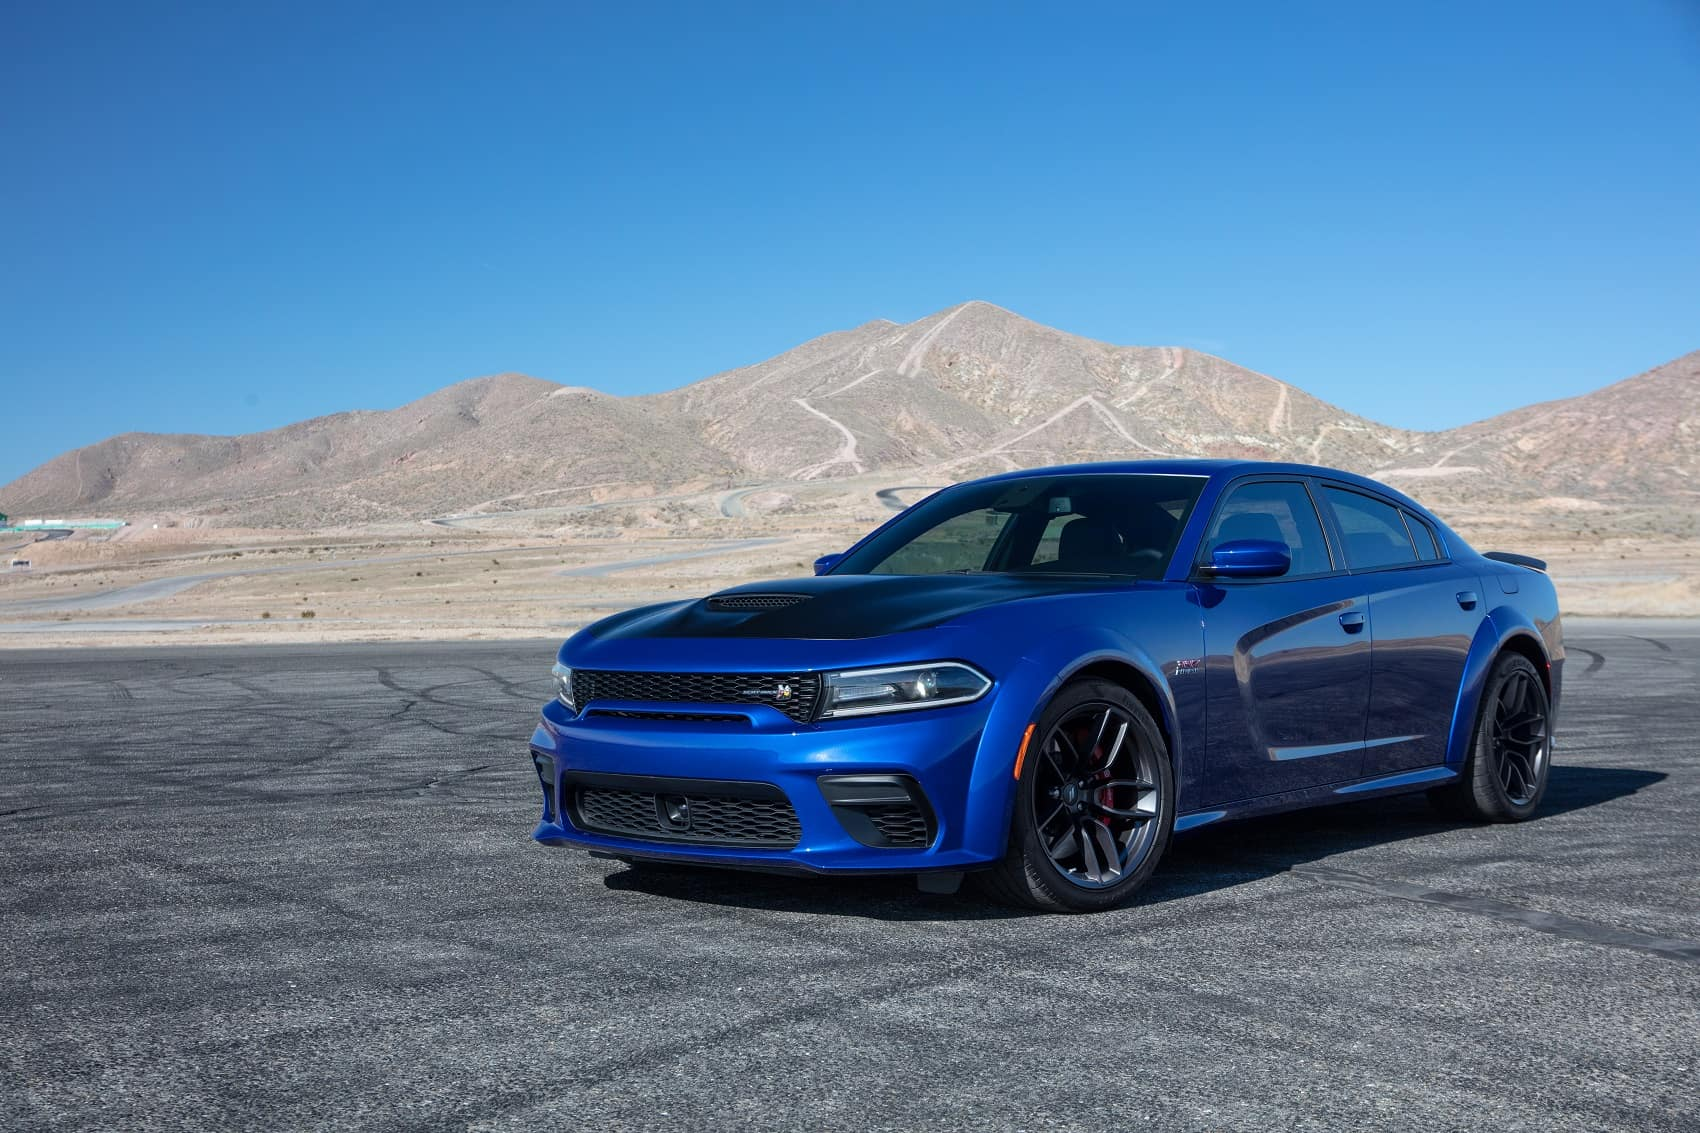 Dodge Charger widebody in front of western mountains